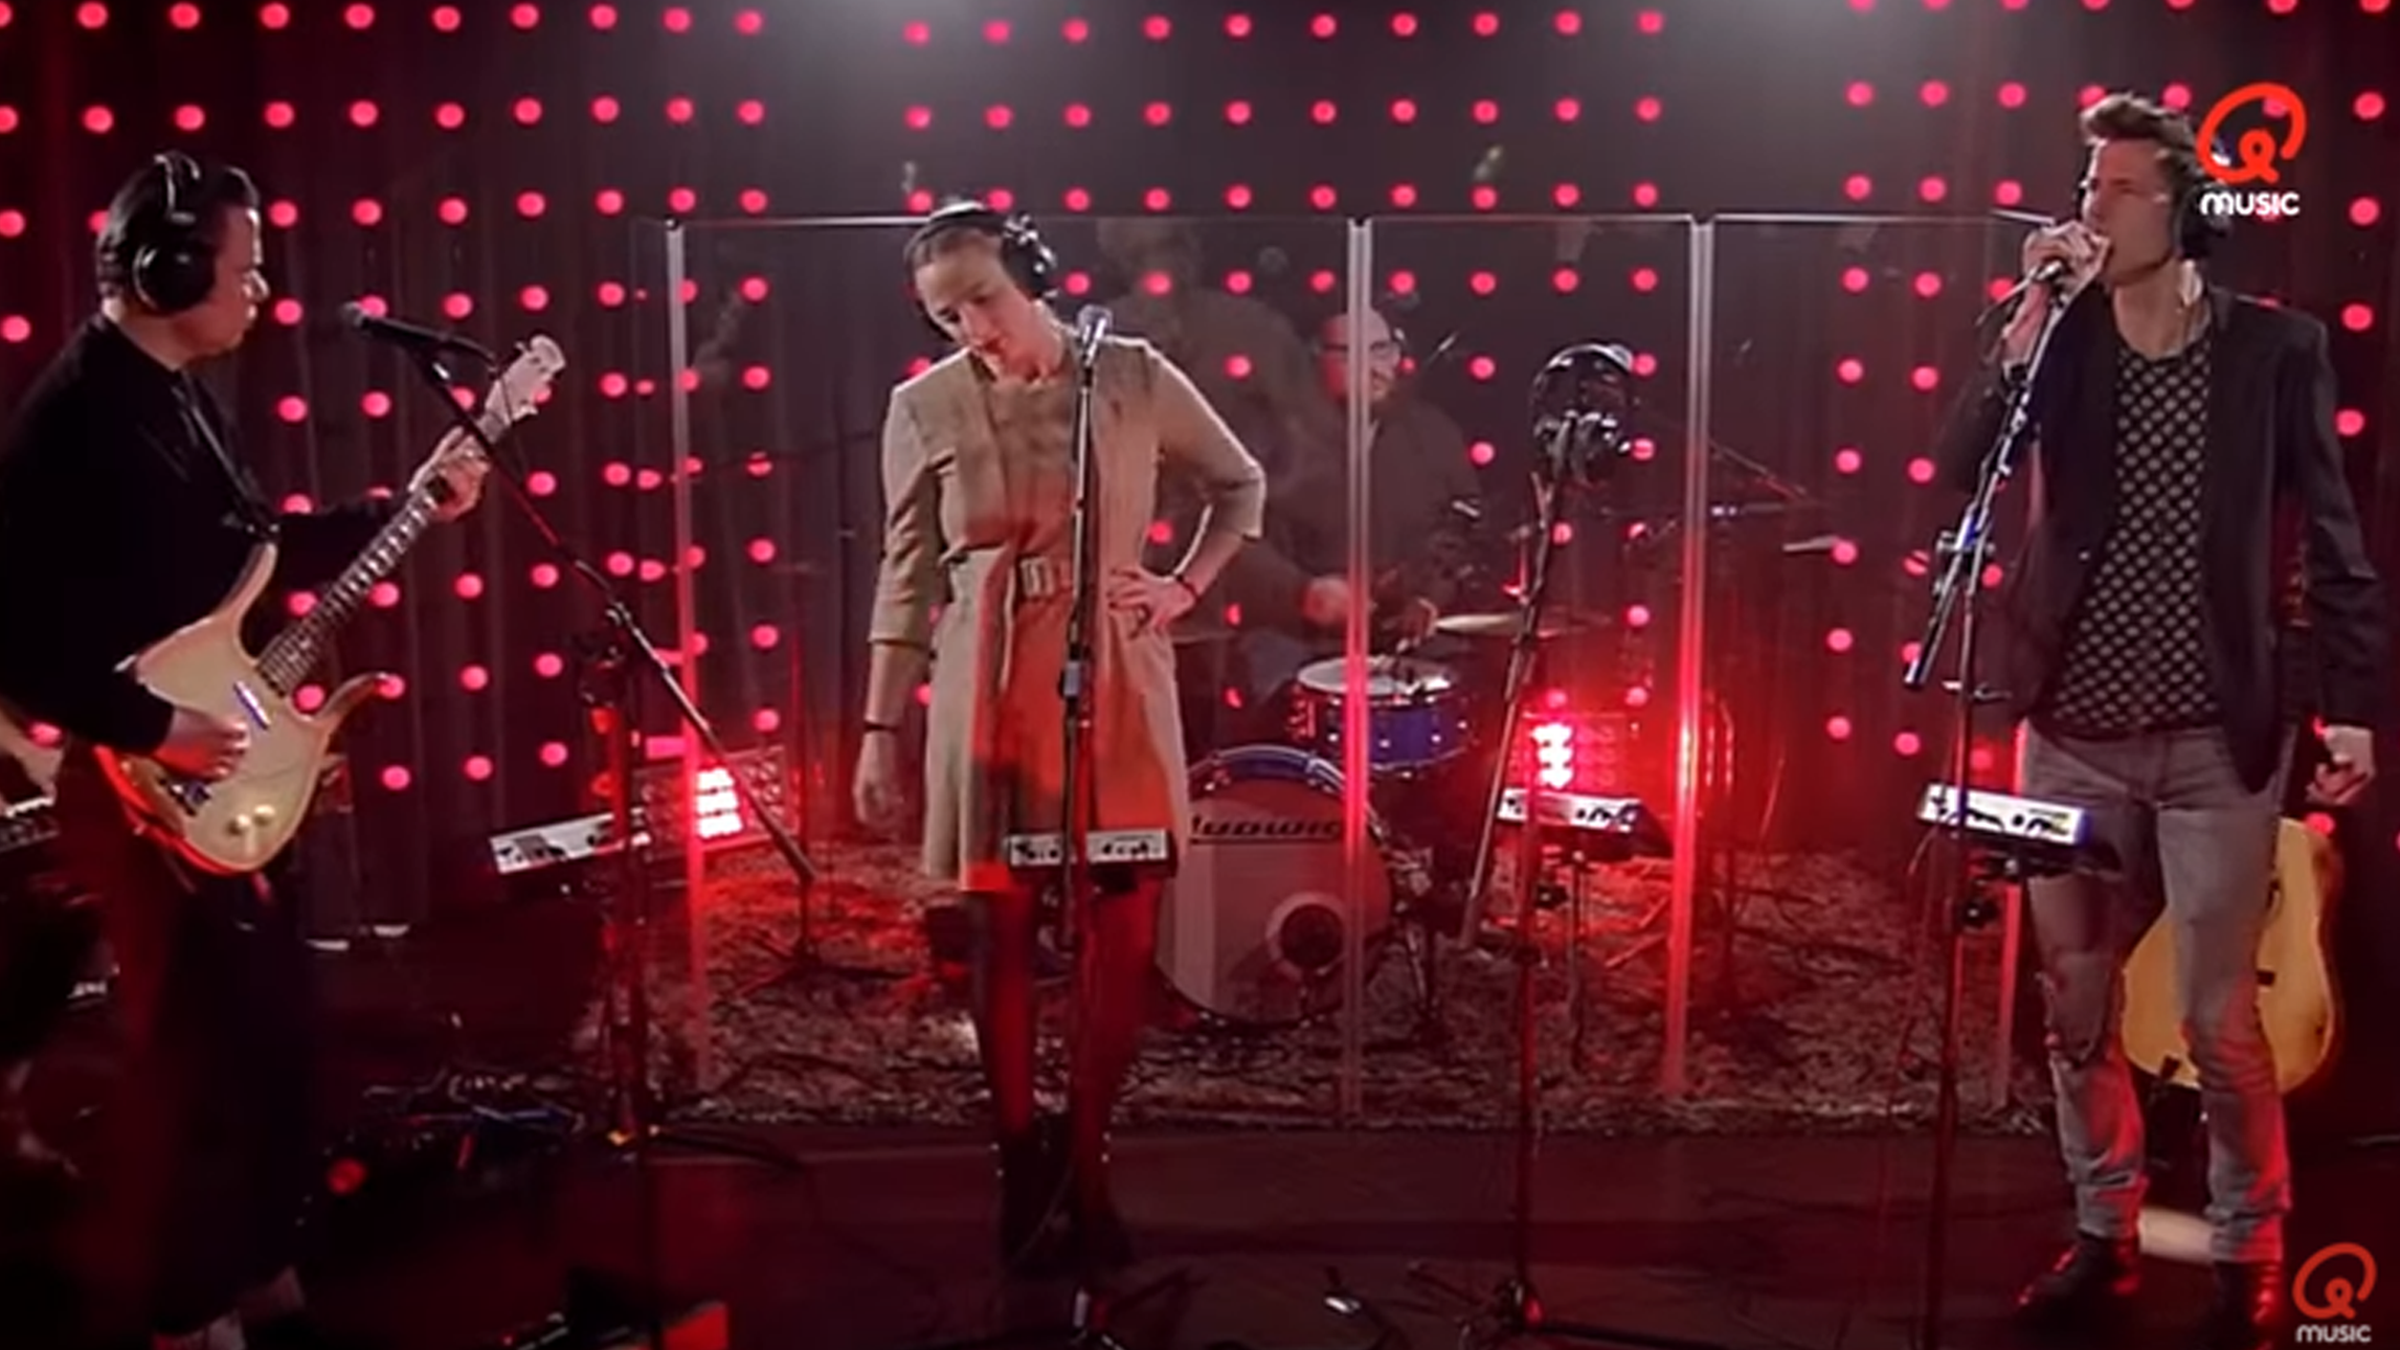 Hooverphonic qmusic youtube2400x1350